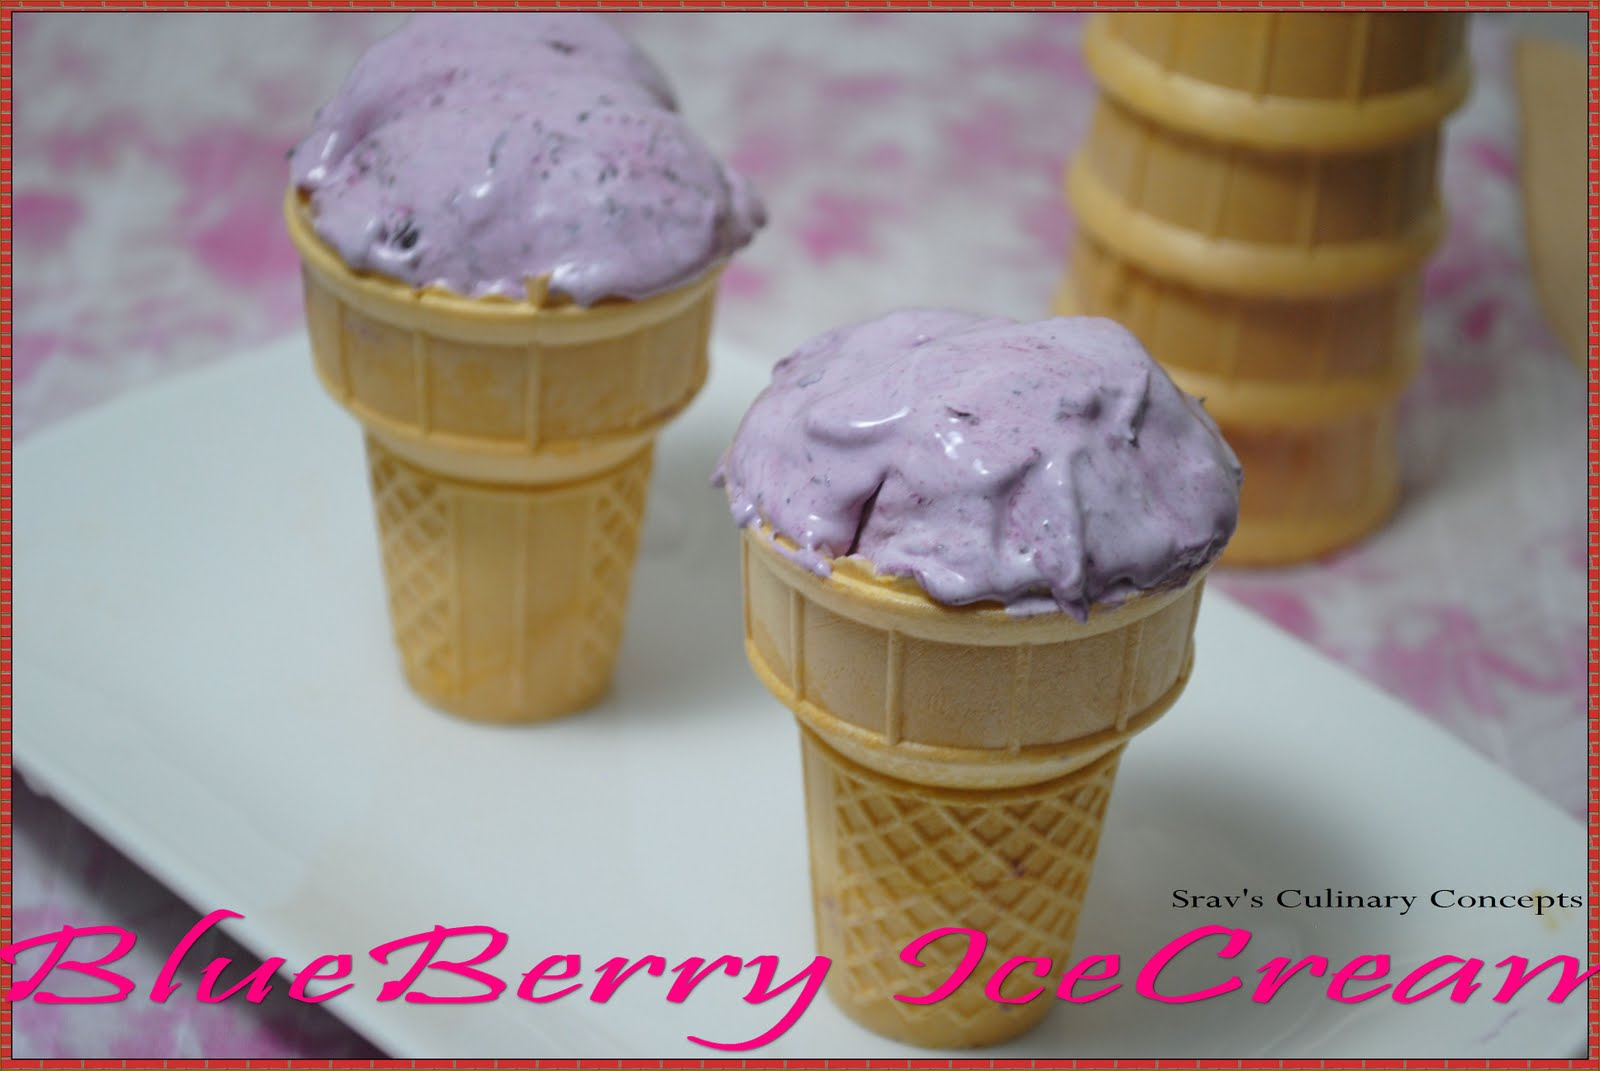 Blueberry icecream